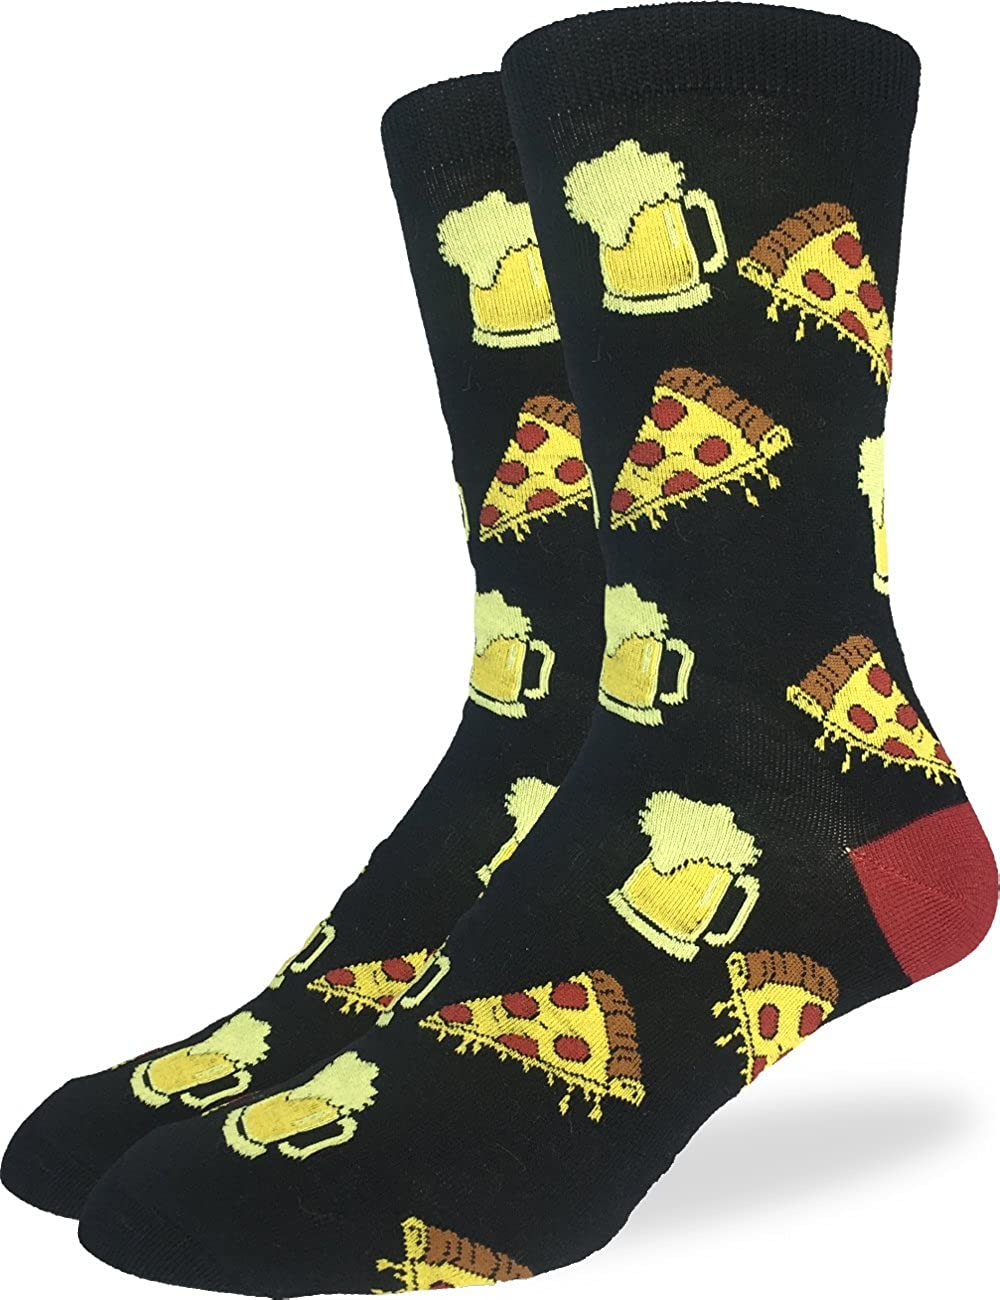 Good Luck Sock Men's Extra Large Pizza & Beer Socks, Size 13-17, Big & Tall